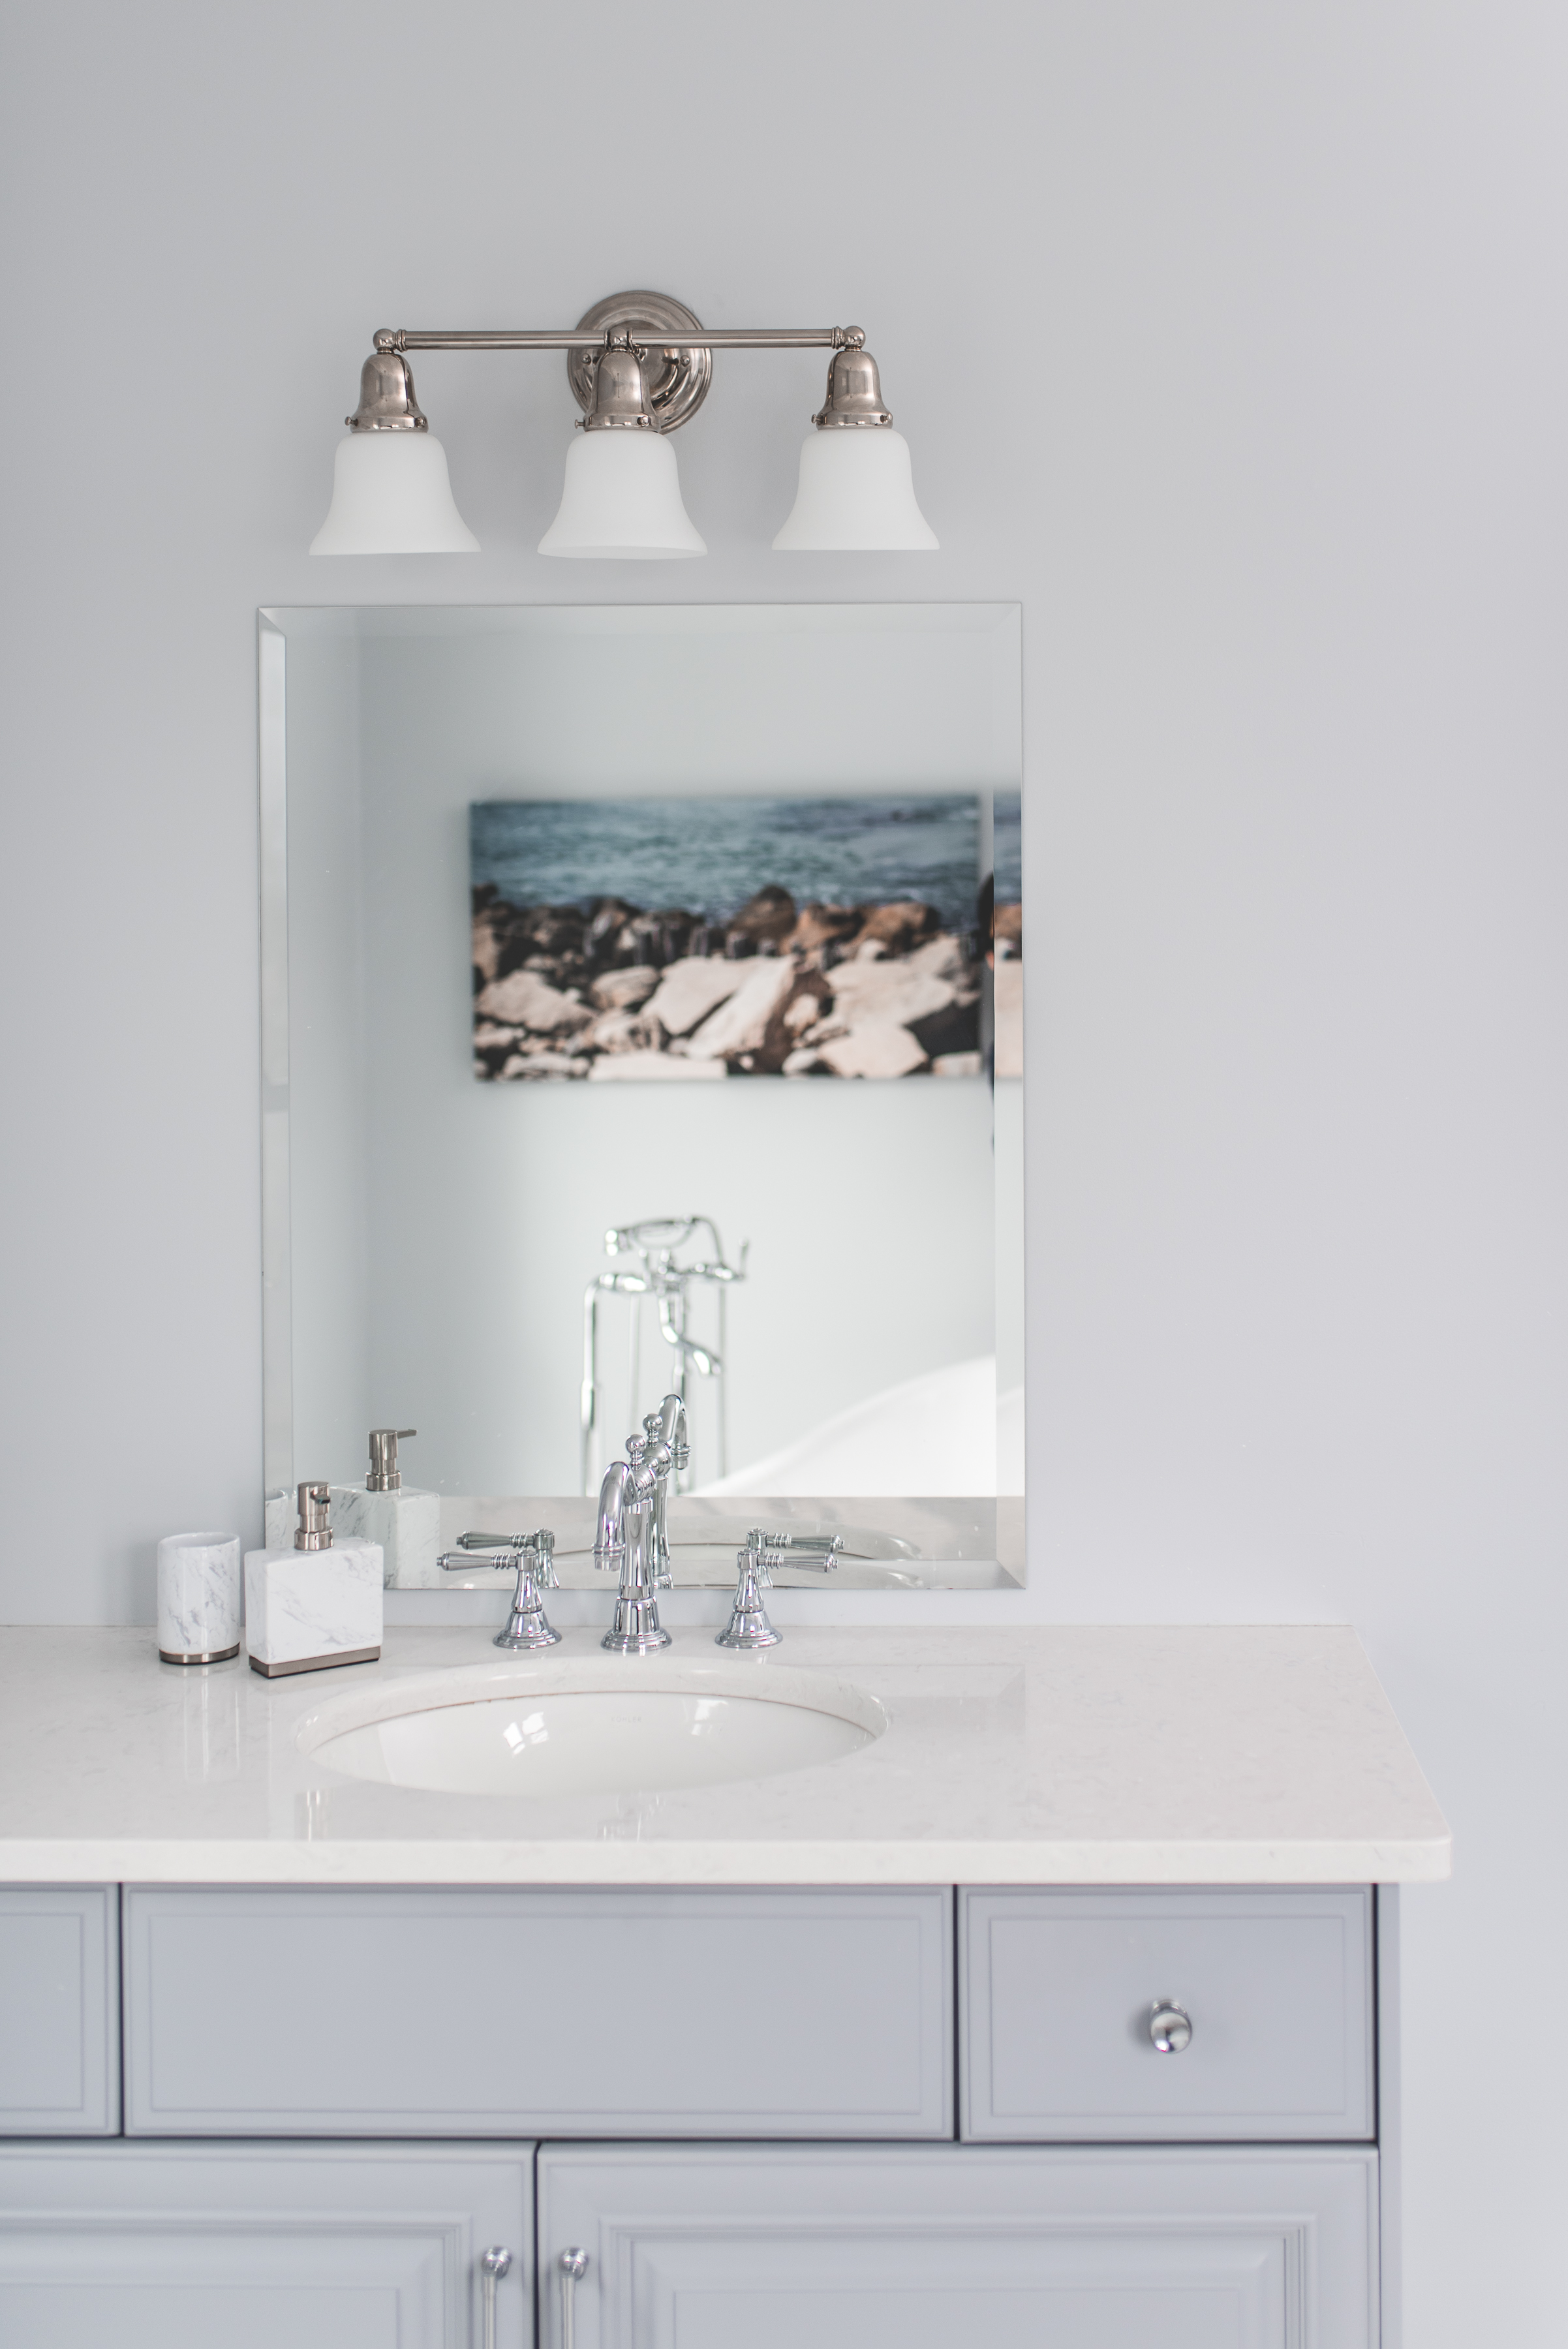 TASK  BATHROOM SCONCE, IN POLISHED NICKEL, ILLUMINATE THIS VANITY. (Wall sconces by Hundson Valley Lighting Group @hvlgroup.com)